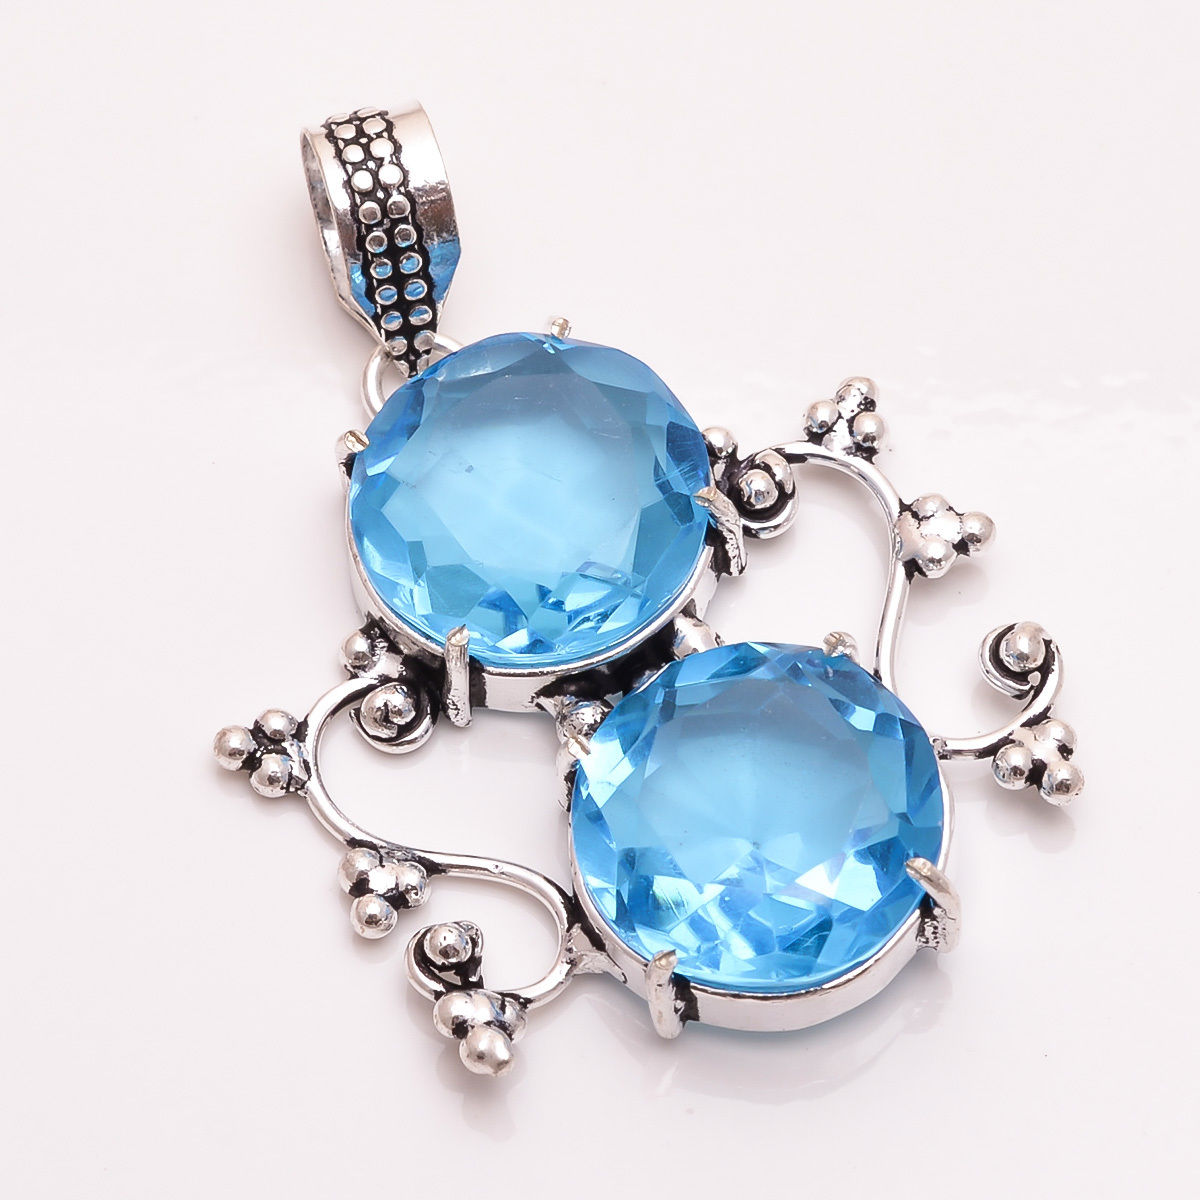 Blue Chalcedony Turquoise Sterling Silver Overlay 6 Grams Earring 1.5 Delicate Handmade Jewelry